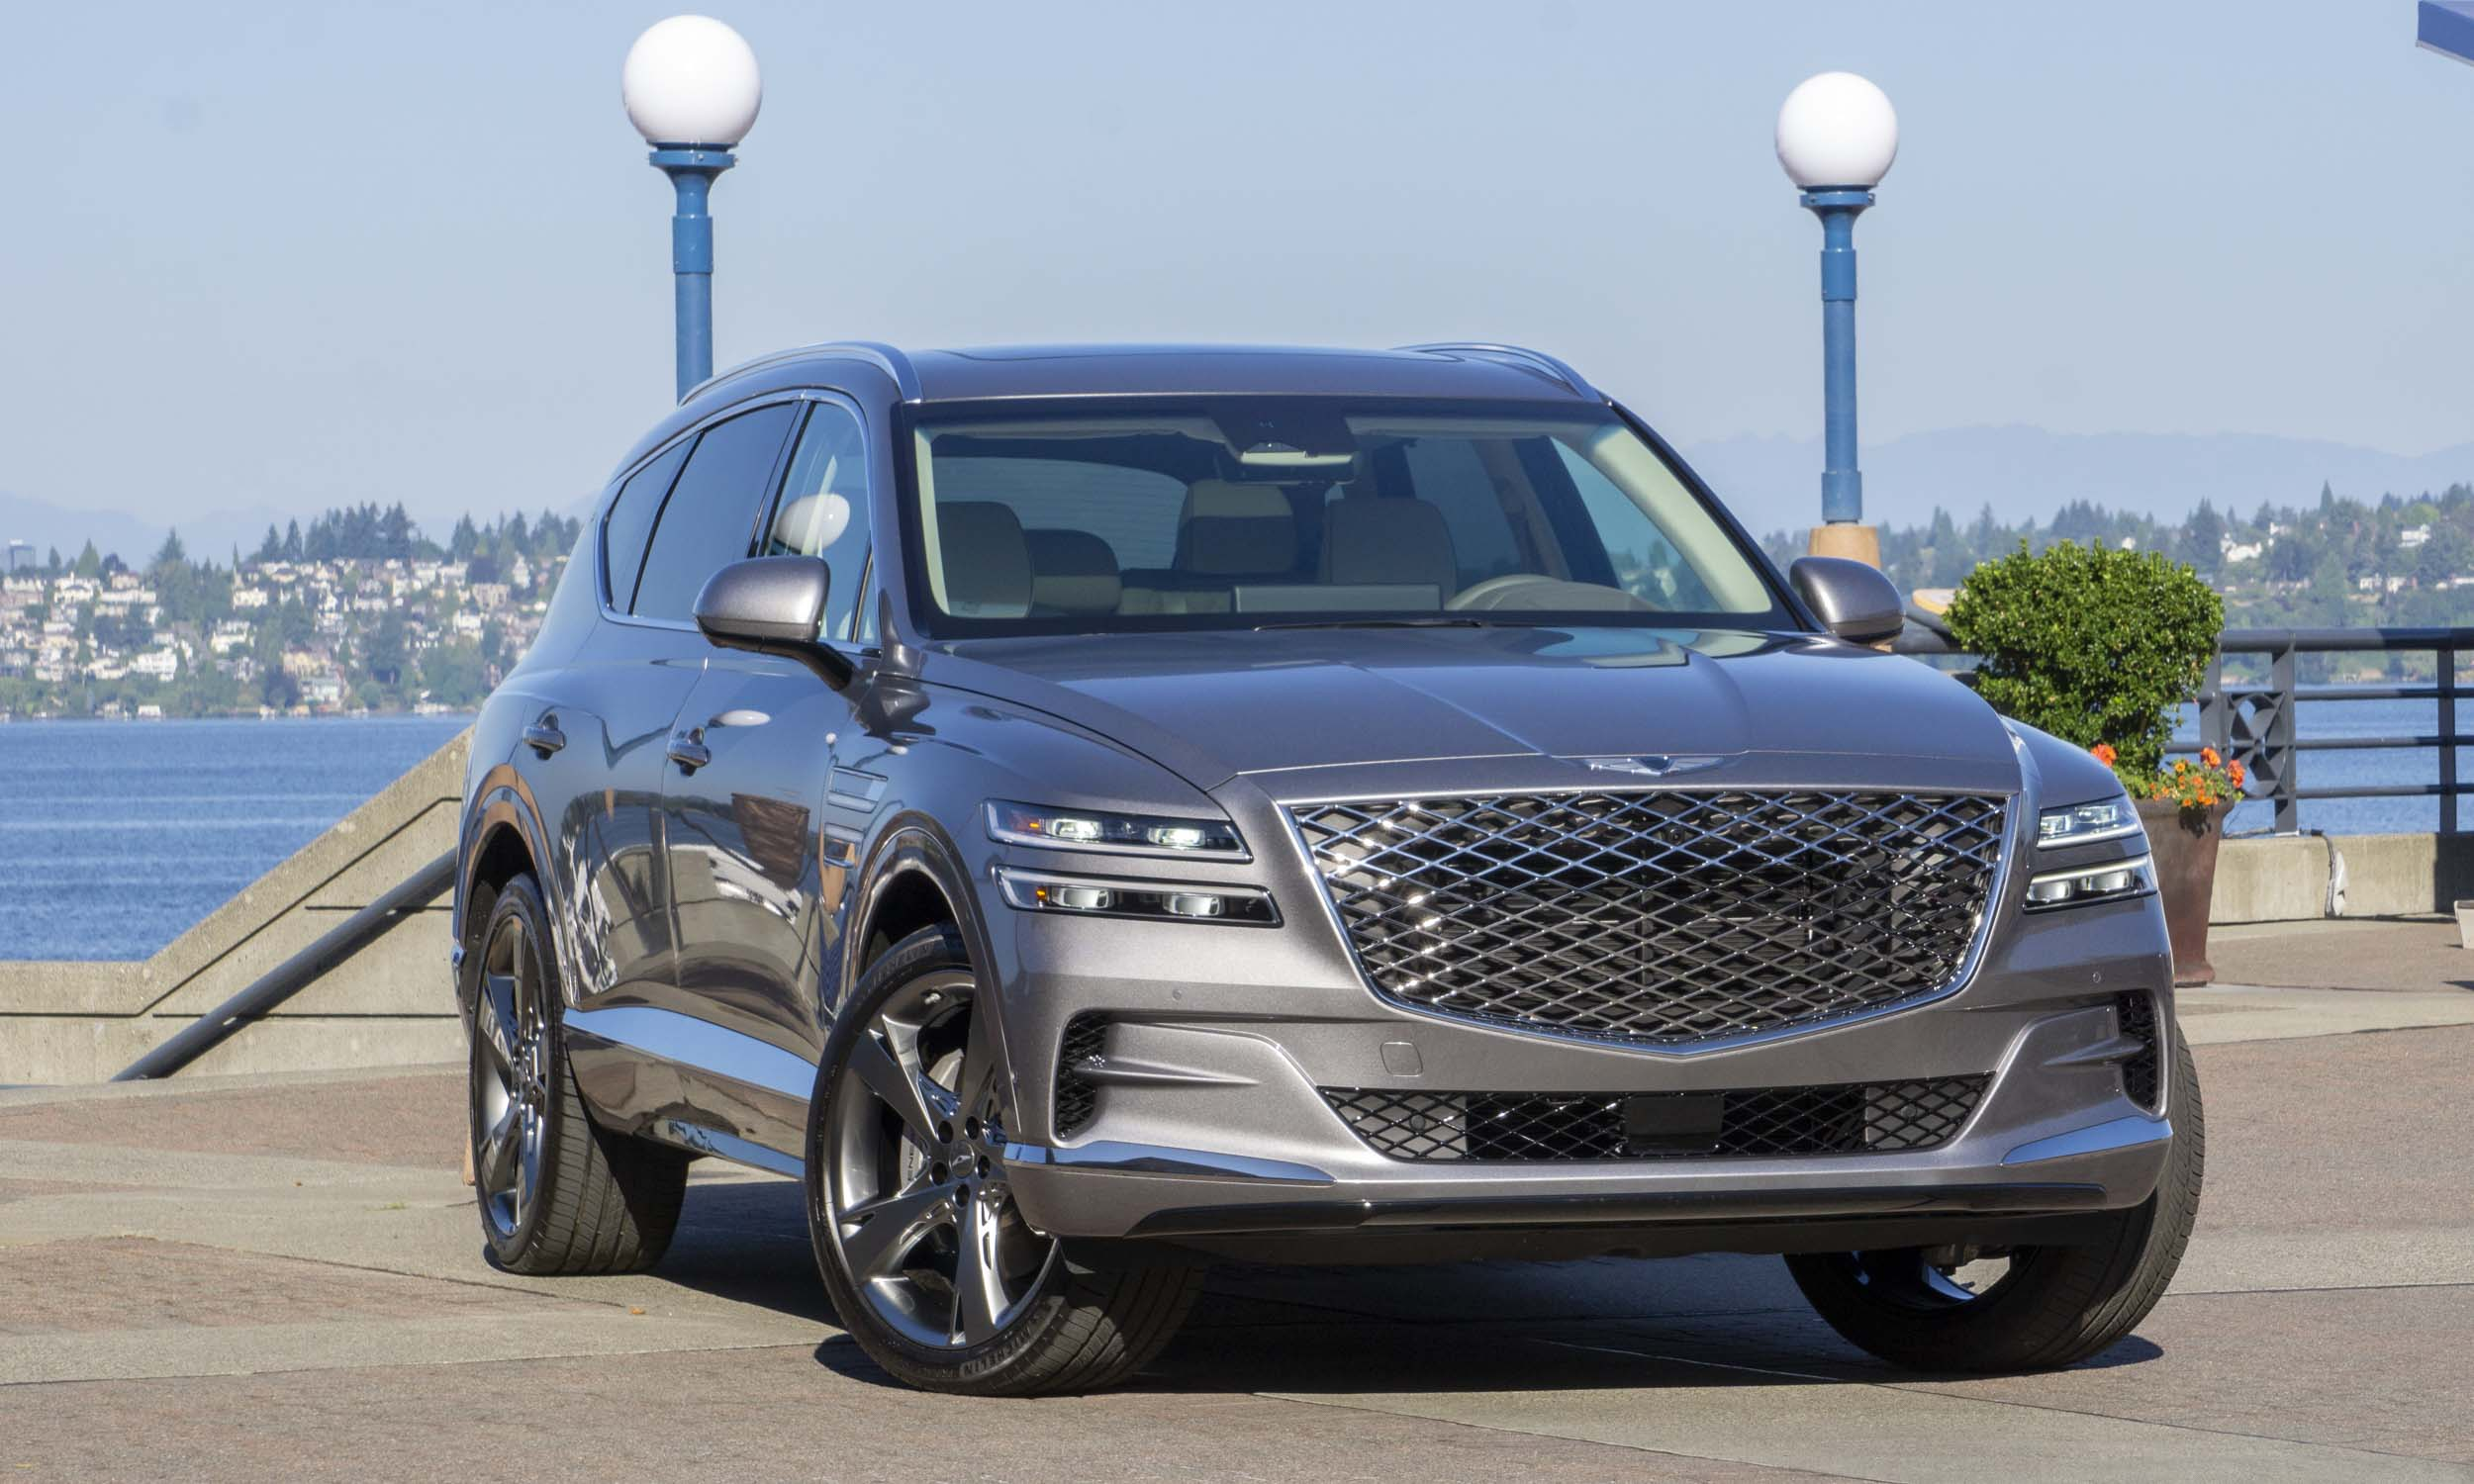 Photo Gallery: 2021 Genesis GV80 Luxury SUV - » AutoNXT